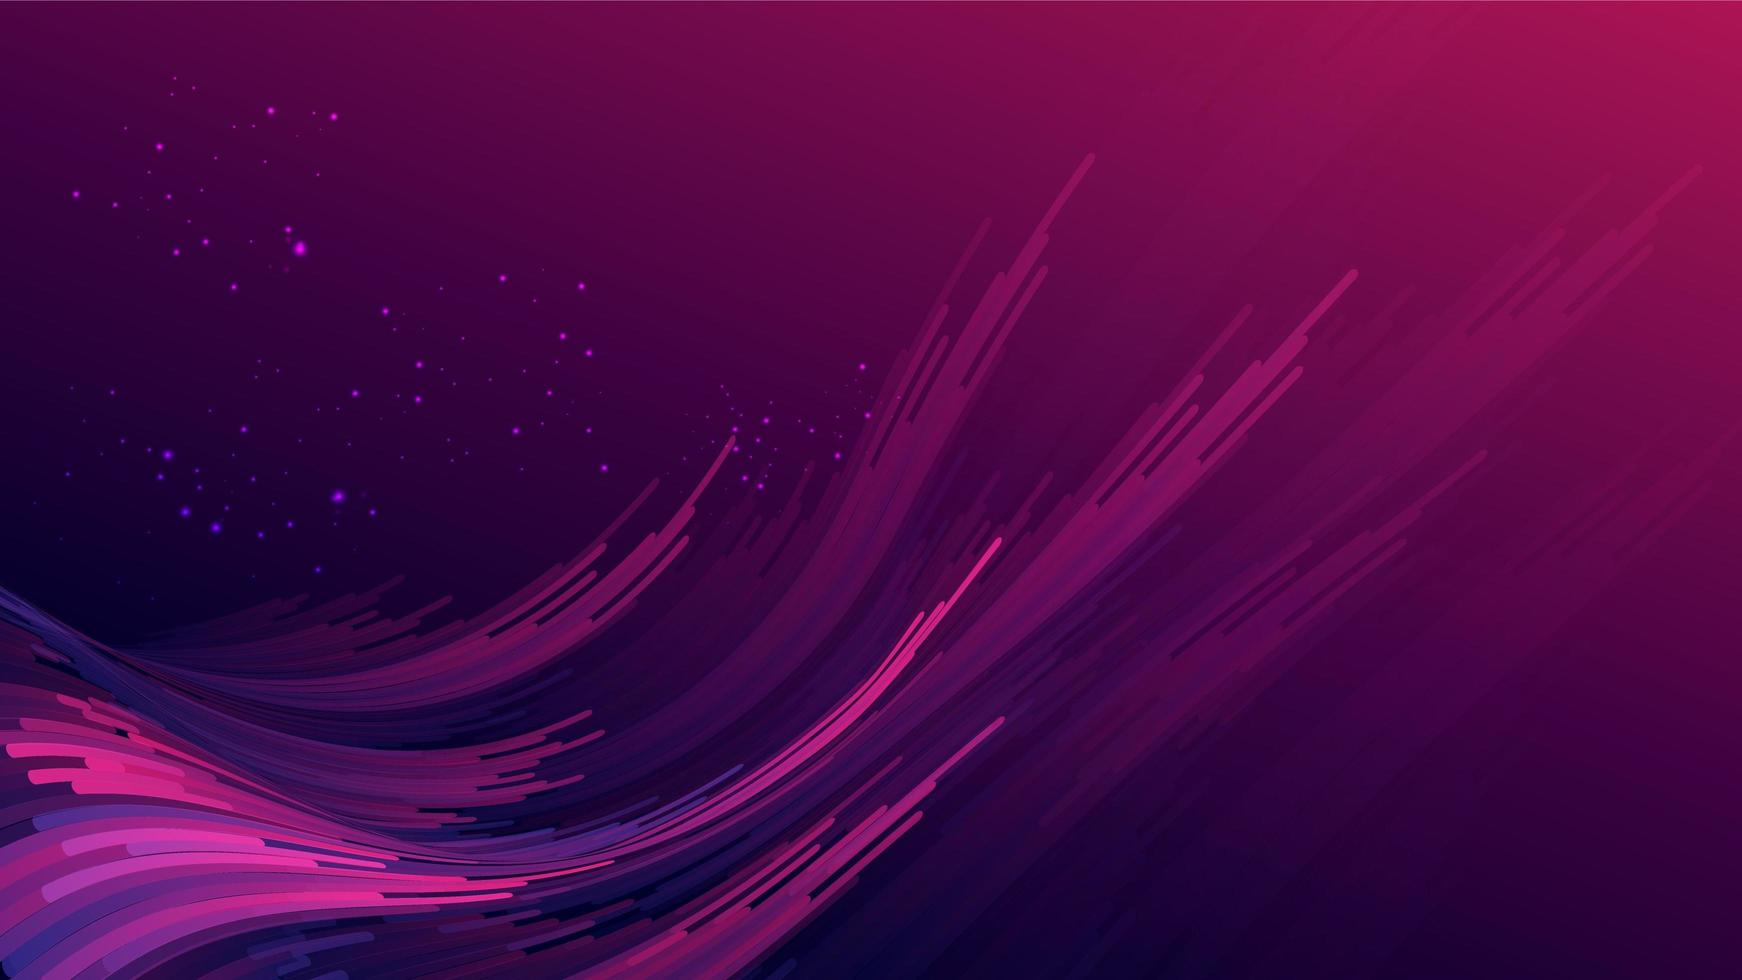 Abstract gradient purple pink curve wave stripes vector